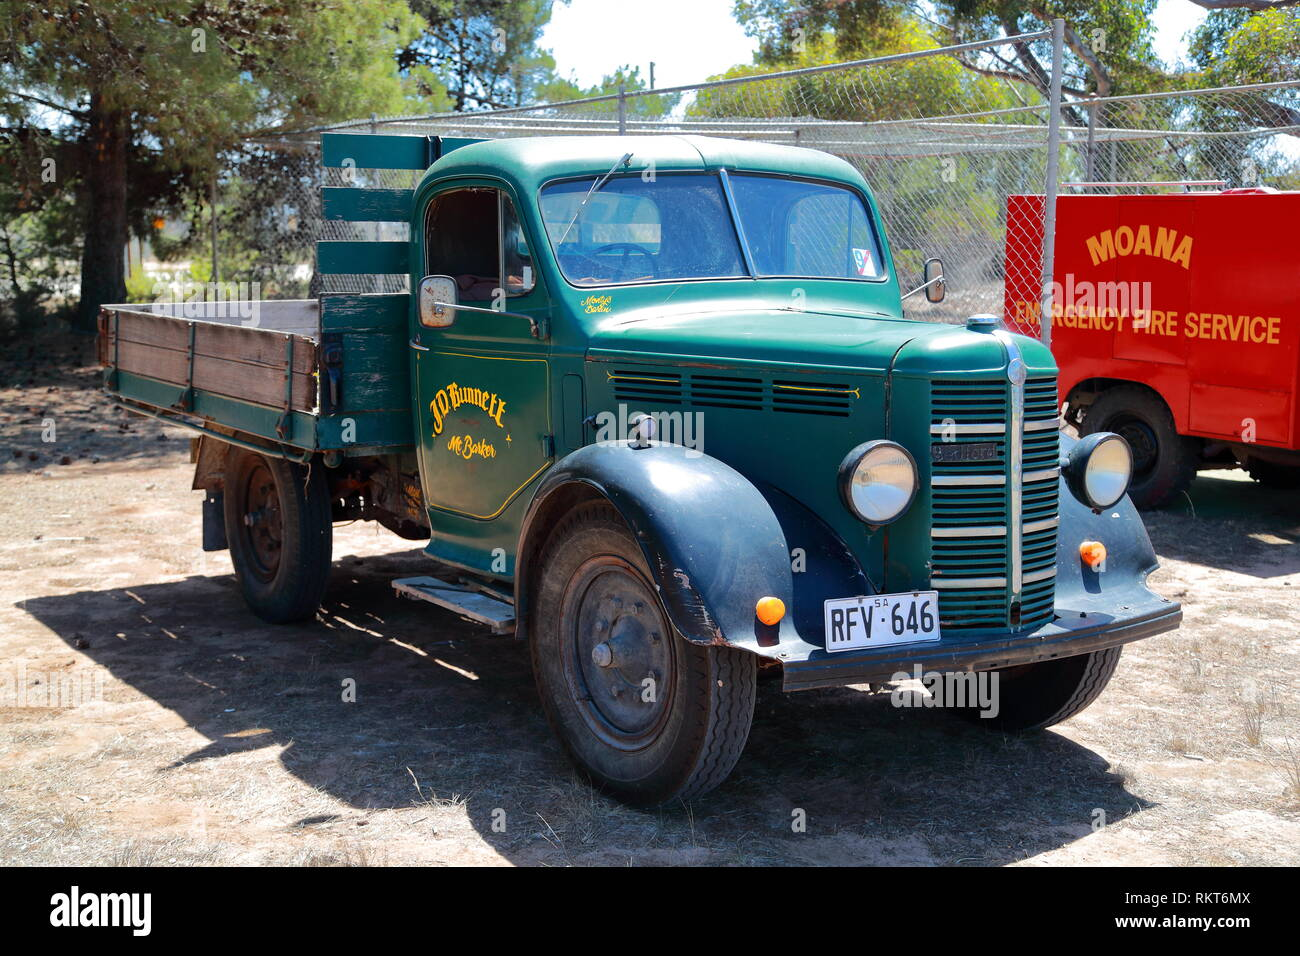 Bedford flat-bed truck at the Power Rally at Port Milang, South Australia - Stock Image